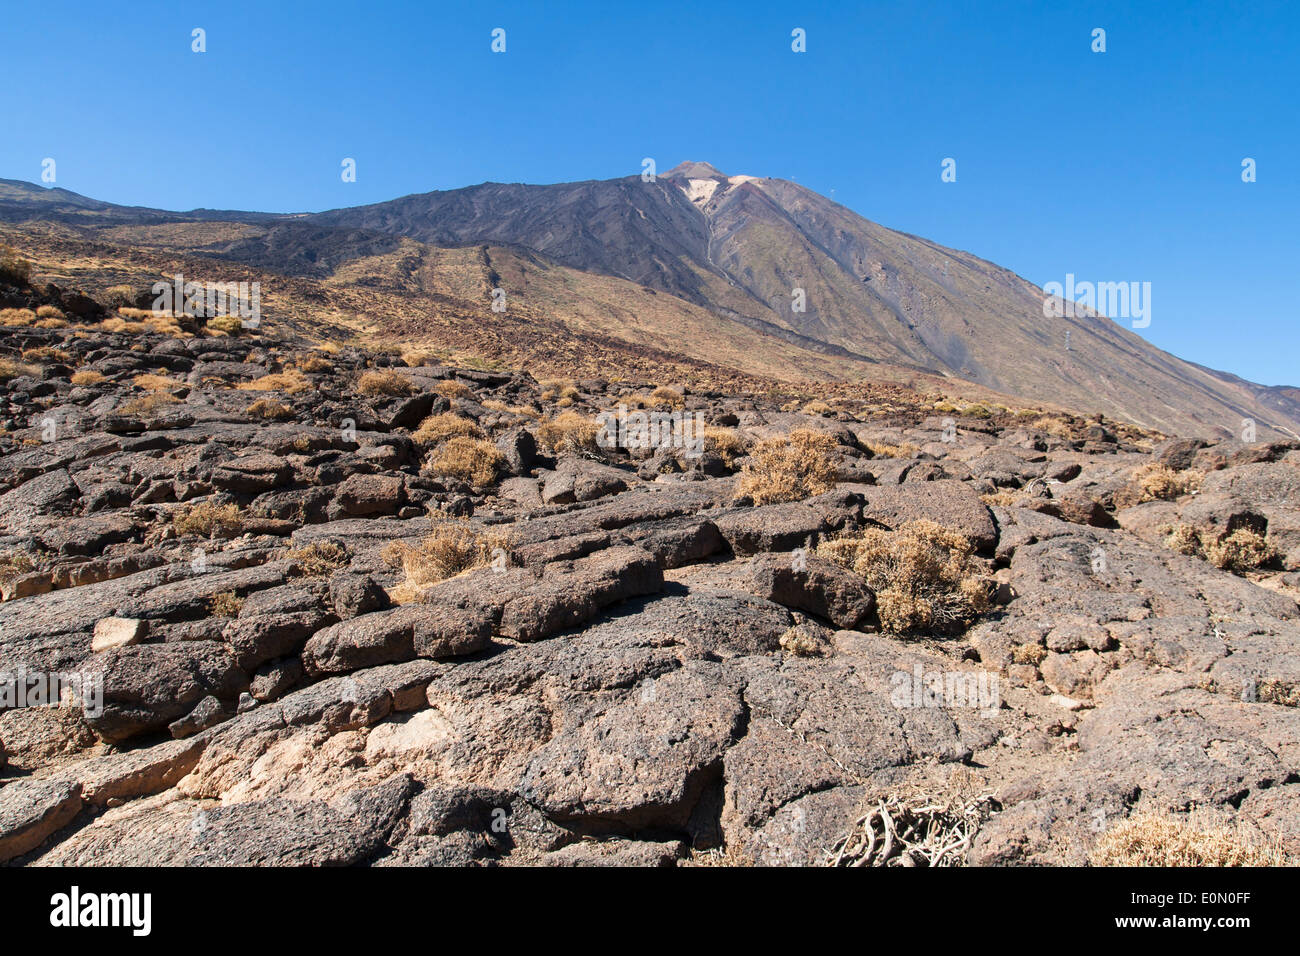 Pahoehoe lava with the Teide volcano in the background in Tenerife, Canary Islands. - Stock Image